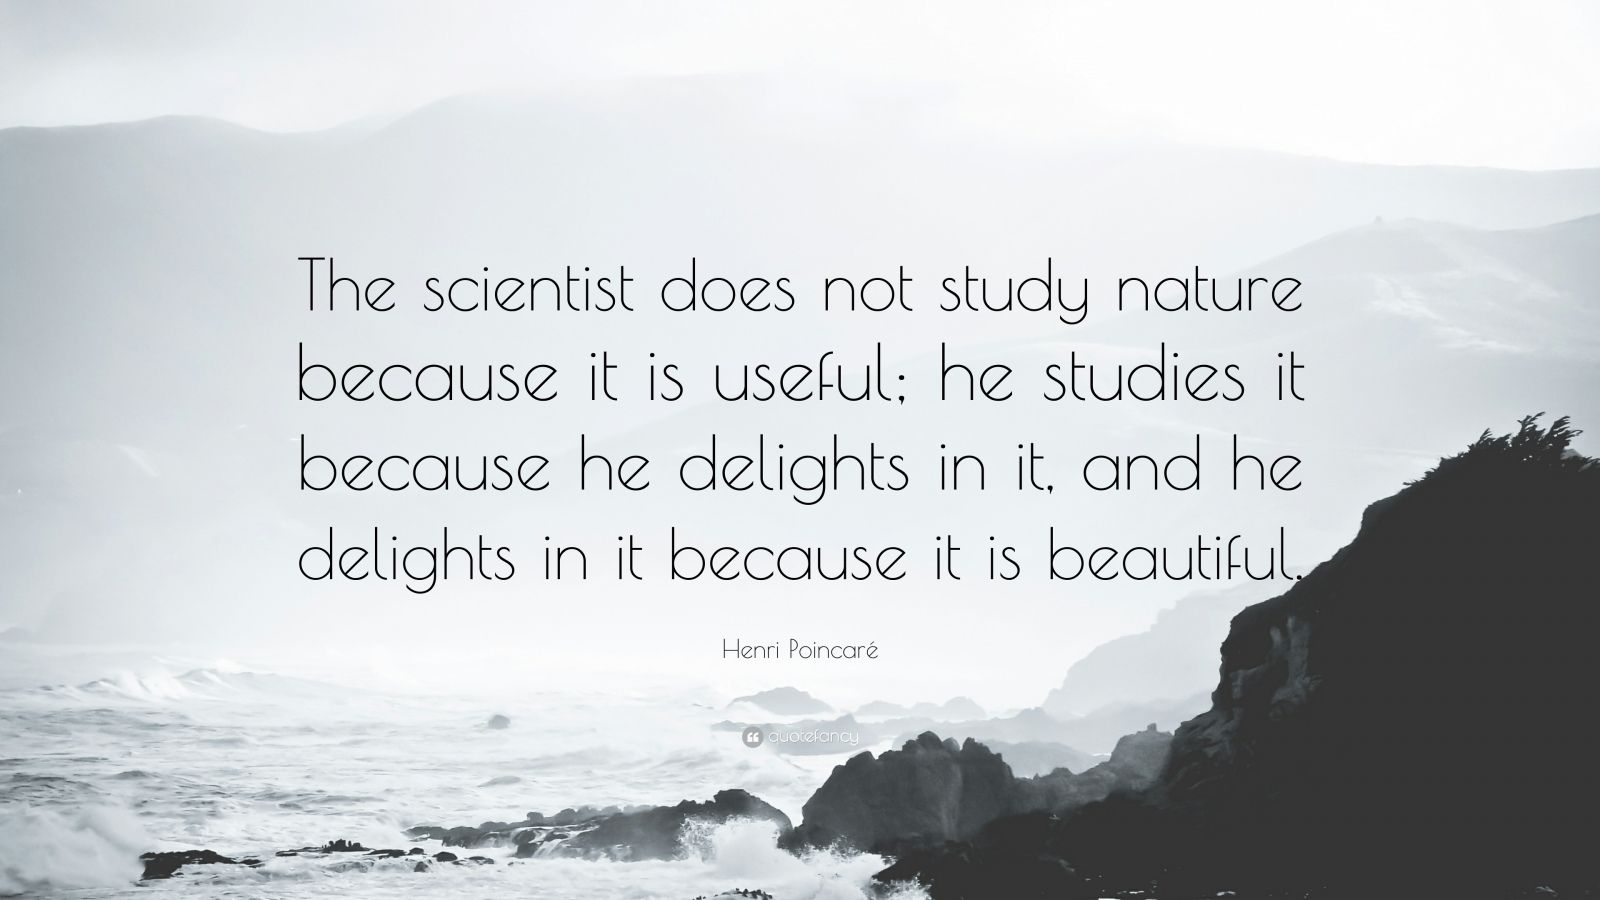 """Henri Poincaré Quote: """"The scientist does not study nature because it is useful; he studies it because he delights in it, and he delights in it because it is beautiful."""""""